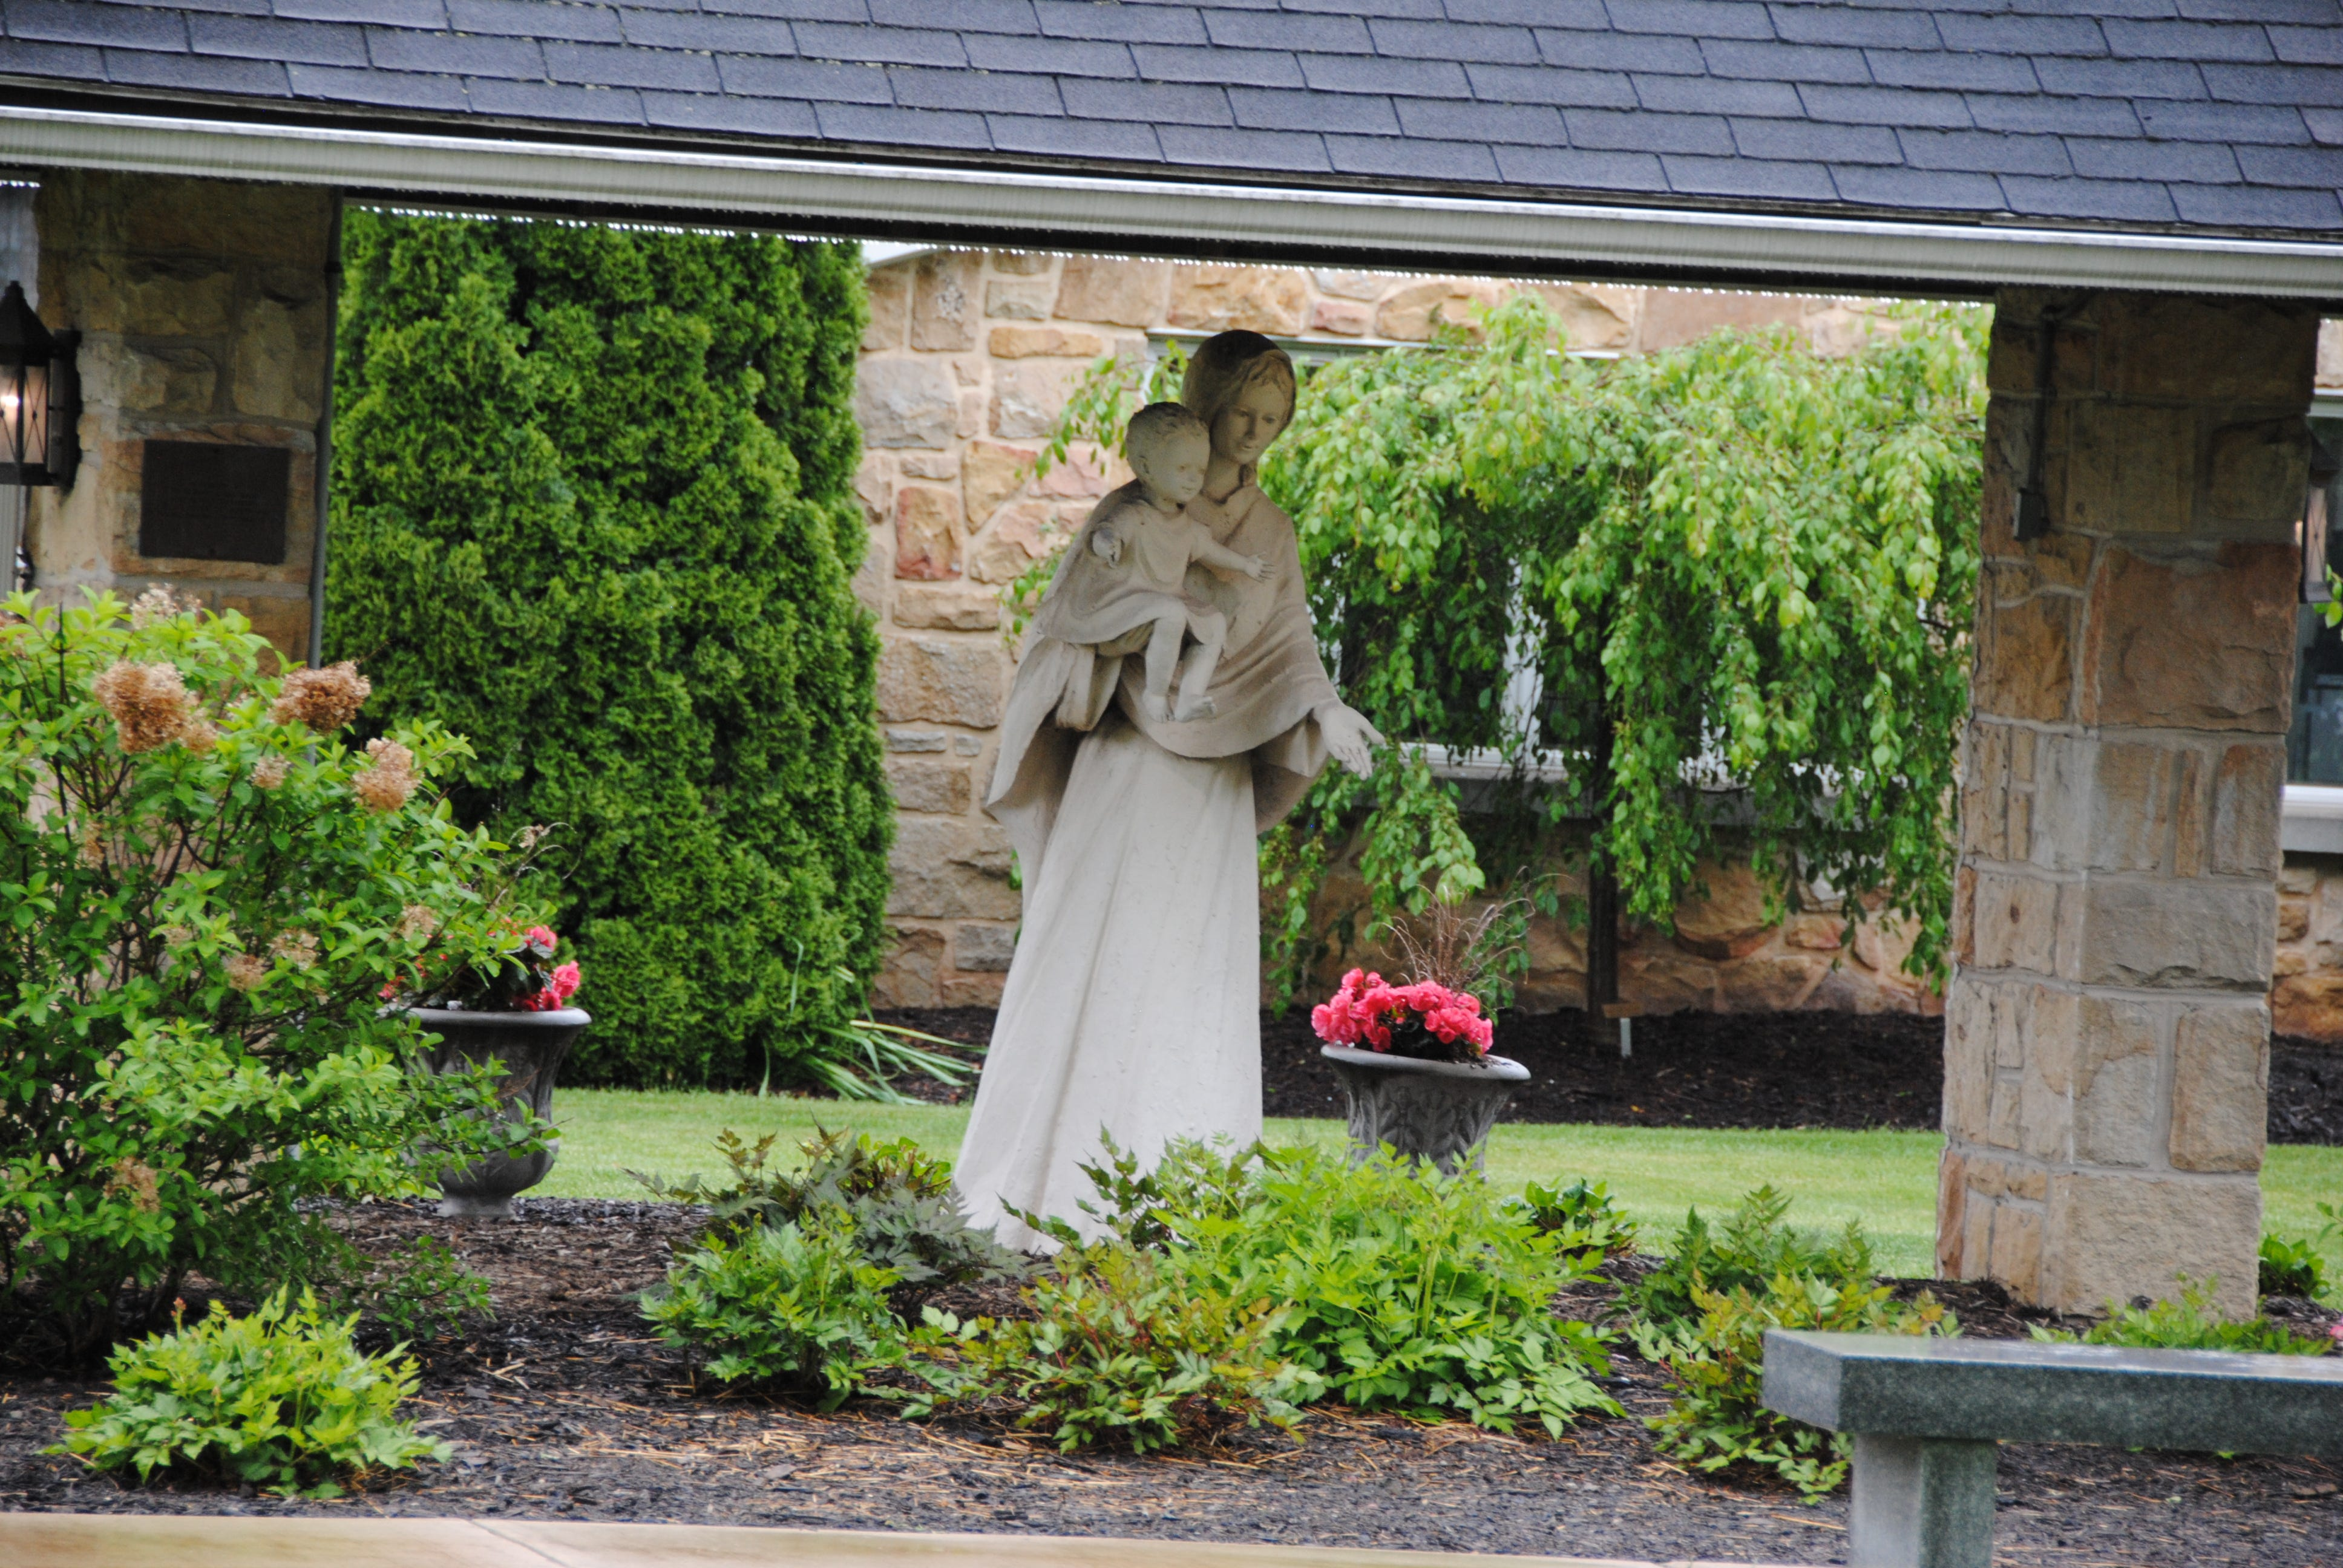 A statue of a woman and child is positioned outside of St. Peter's Catholic Church in Somerset.